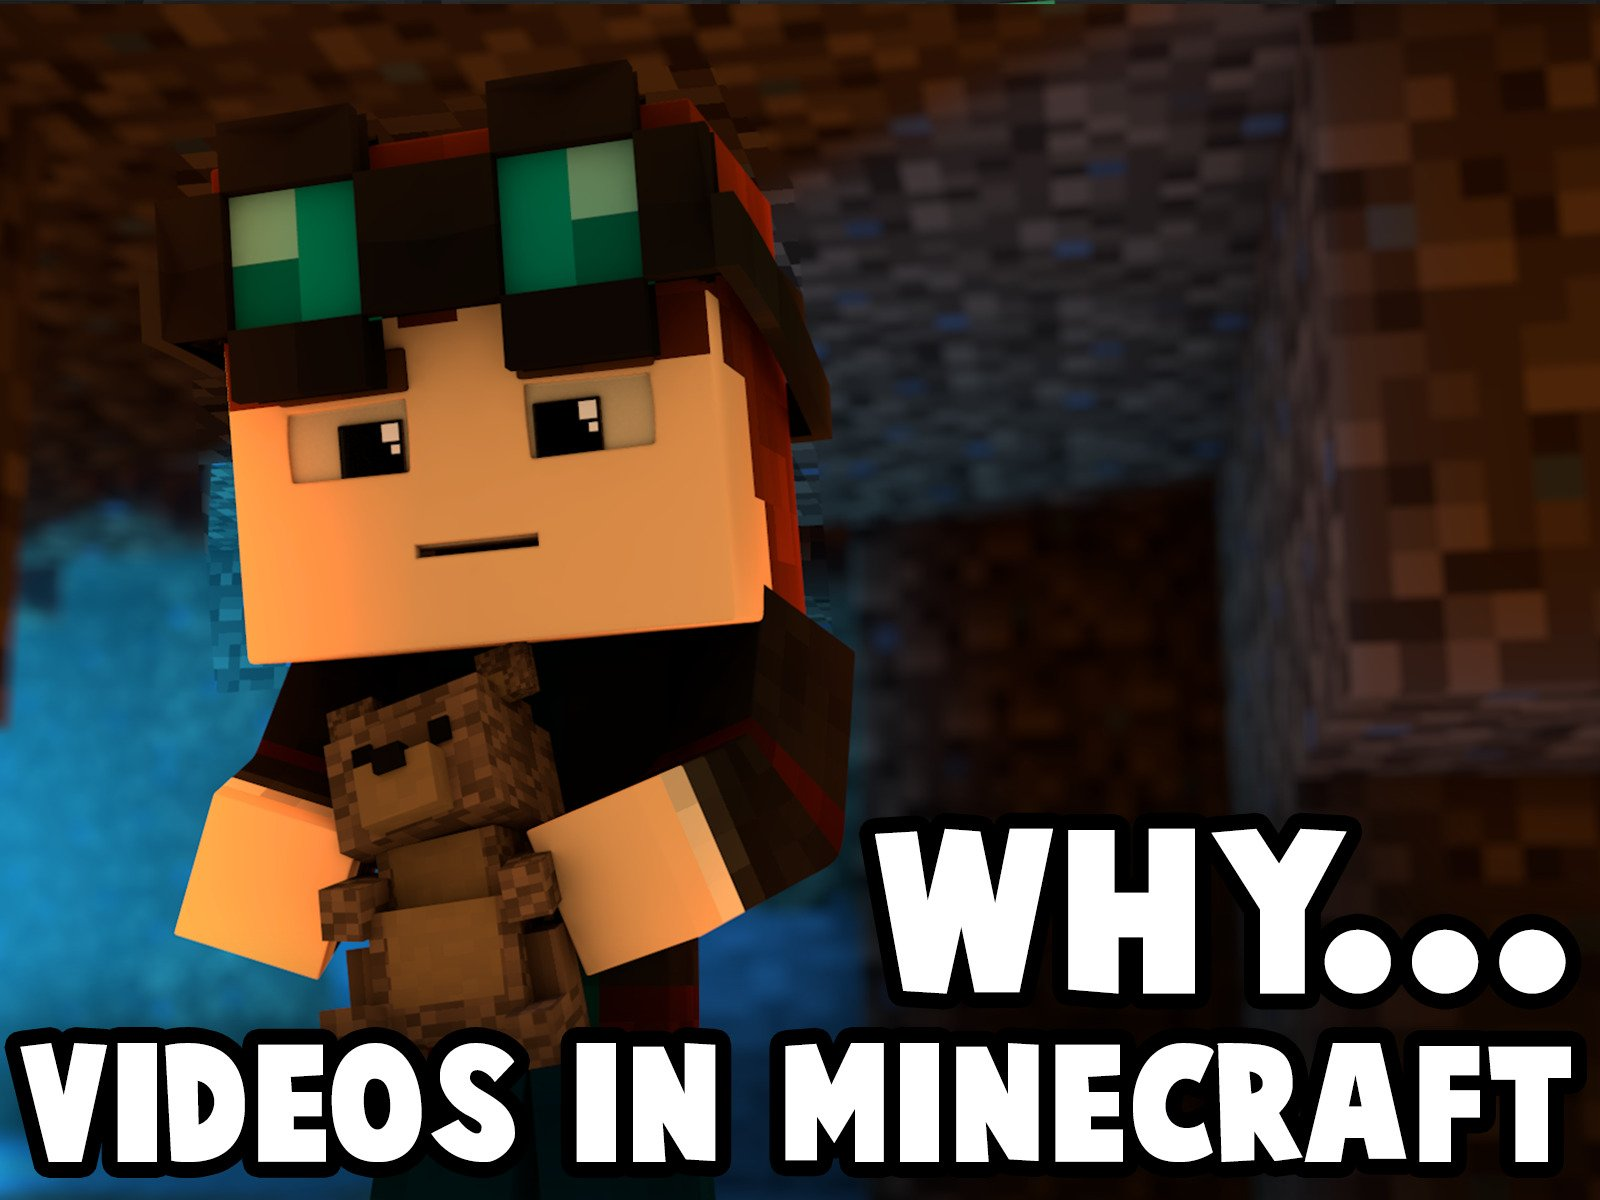 Watch Why - Videos in Minecraft  Prime Video